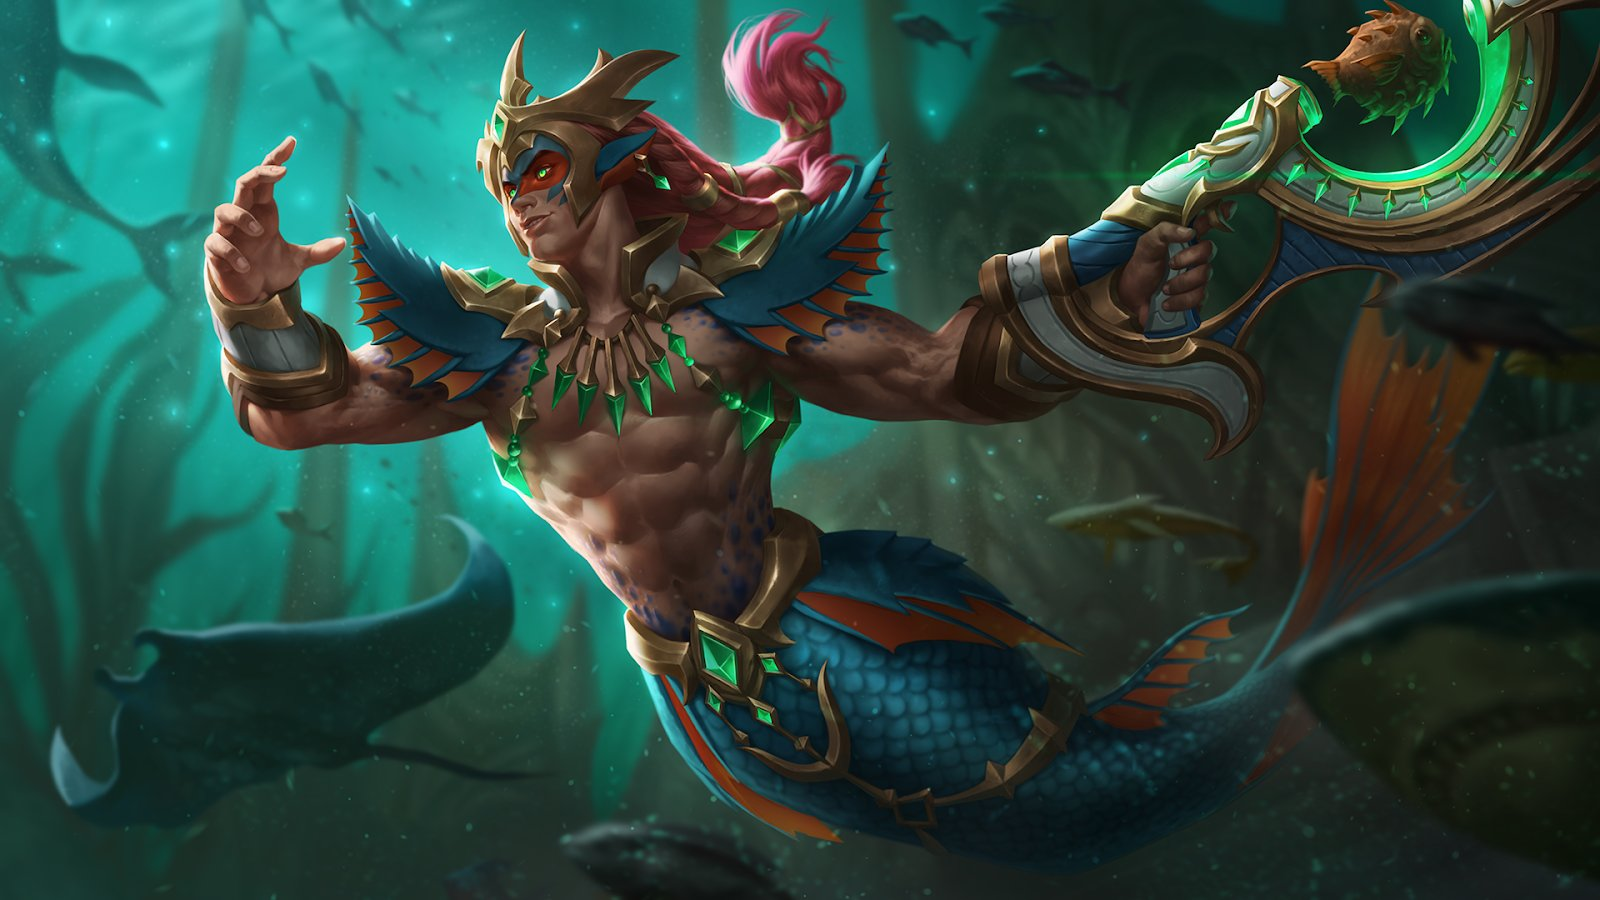 Mermaid Jenos